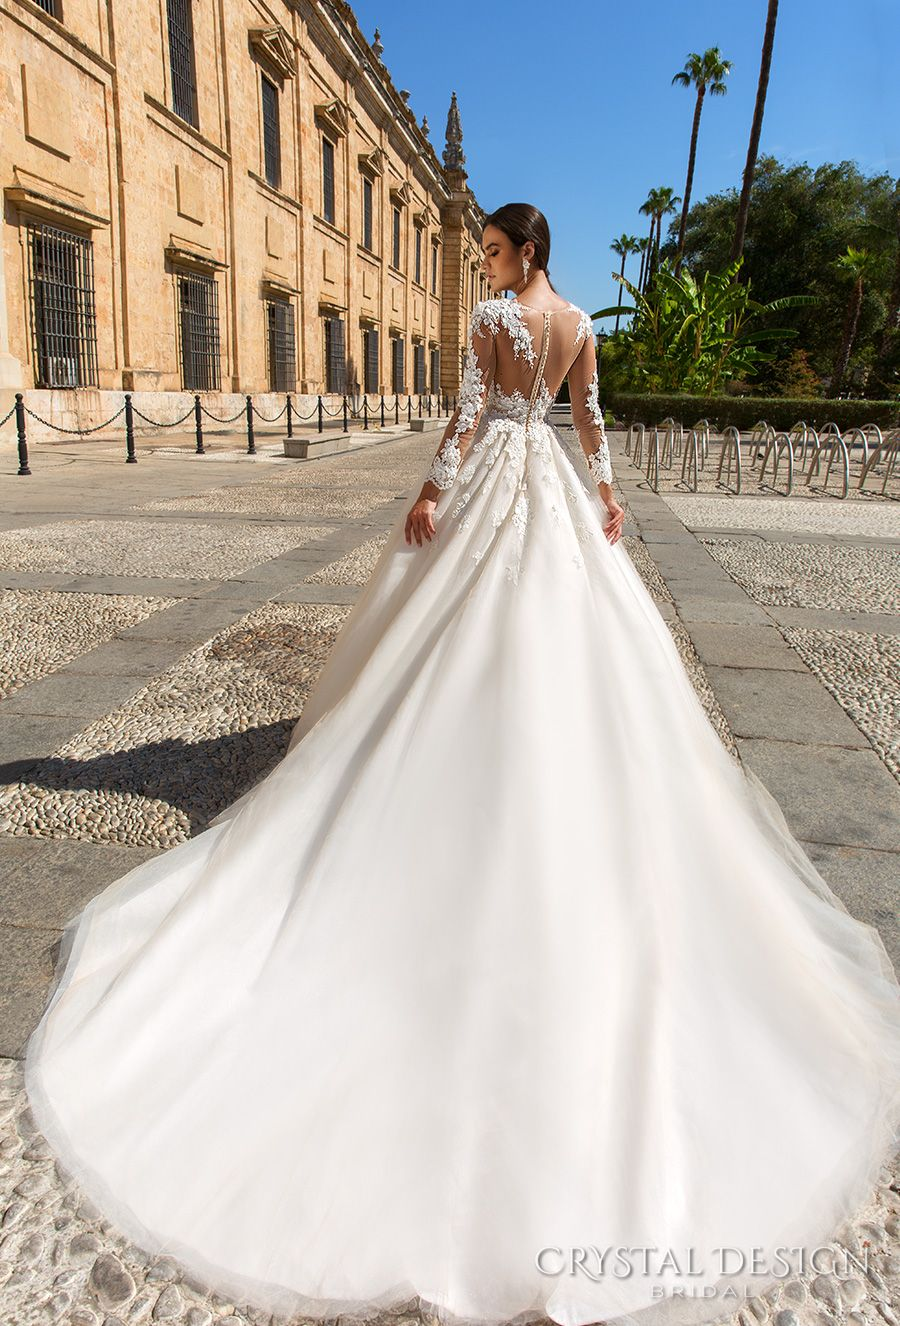 Beautiful Wedding Dresses From The 2017 Crystal Design Collection Sevilla Bridal Campaign Wedding Inspirasi Wedding Dresses Lace Princess Wedding Dresses Wedding Dresses 2017 [ jpg ]